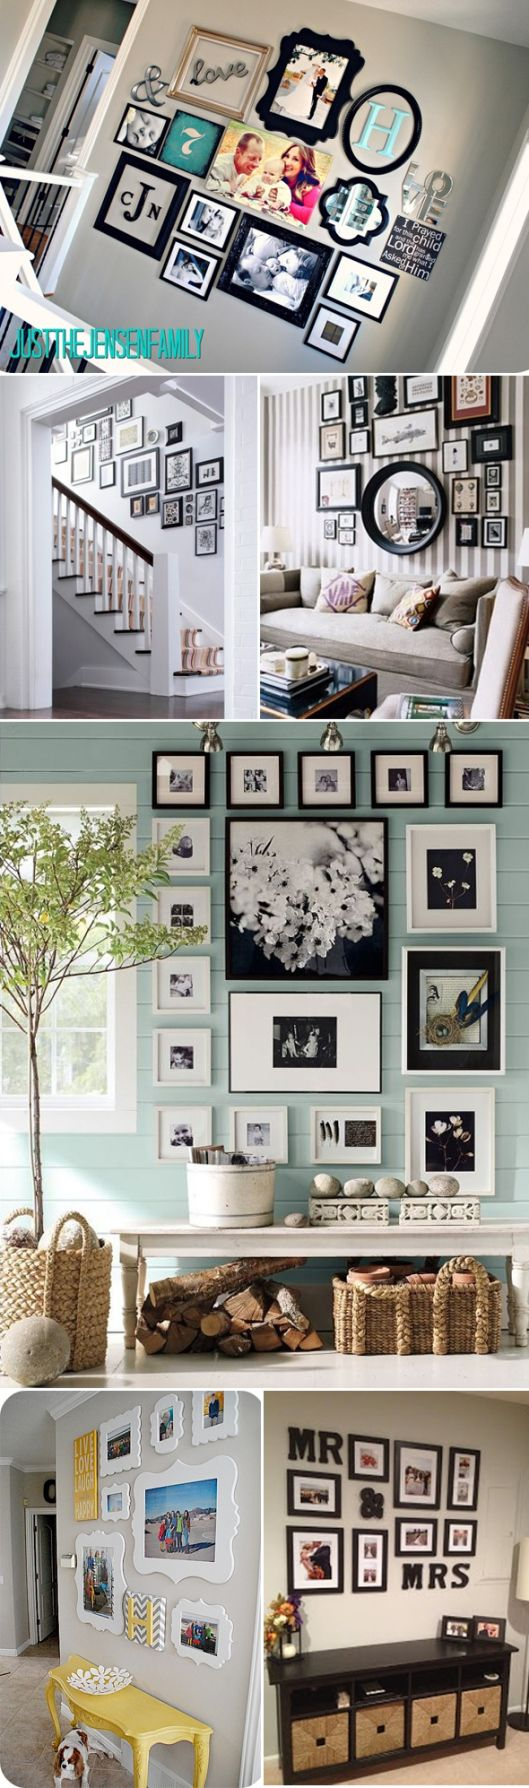 Photo wall ideas!